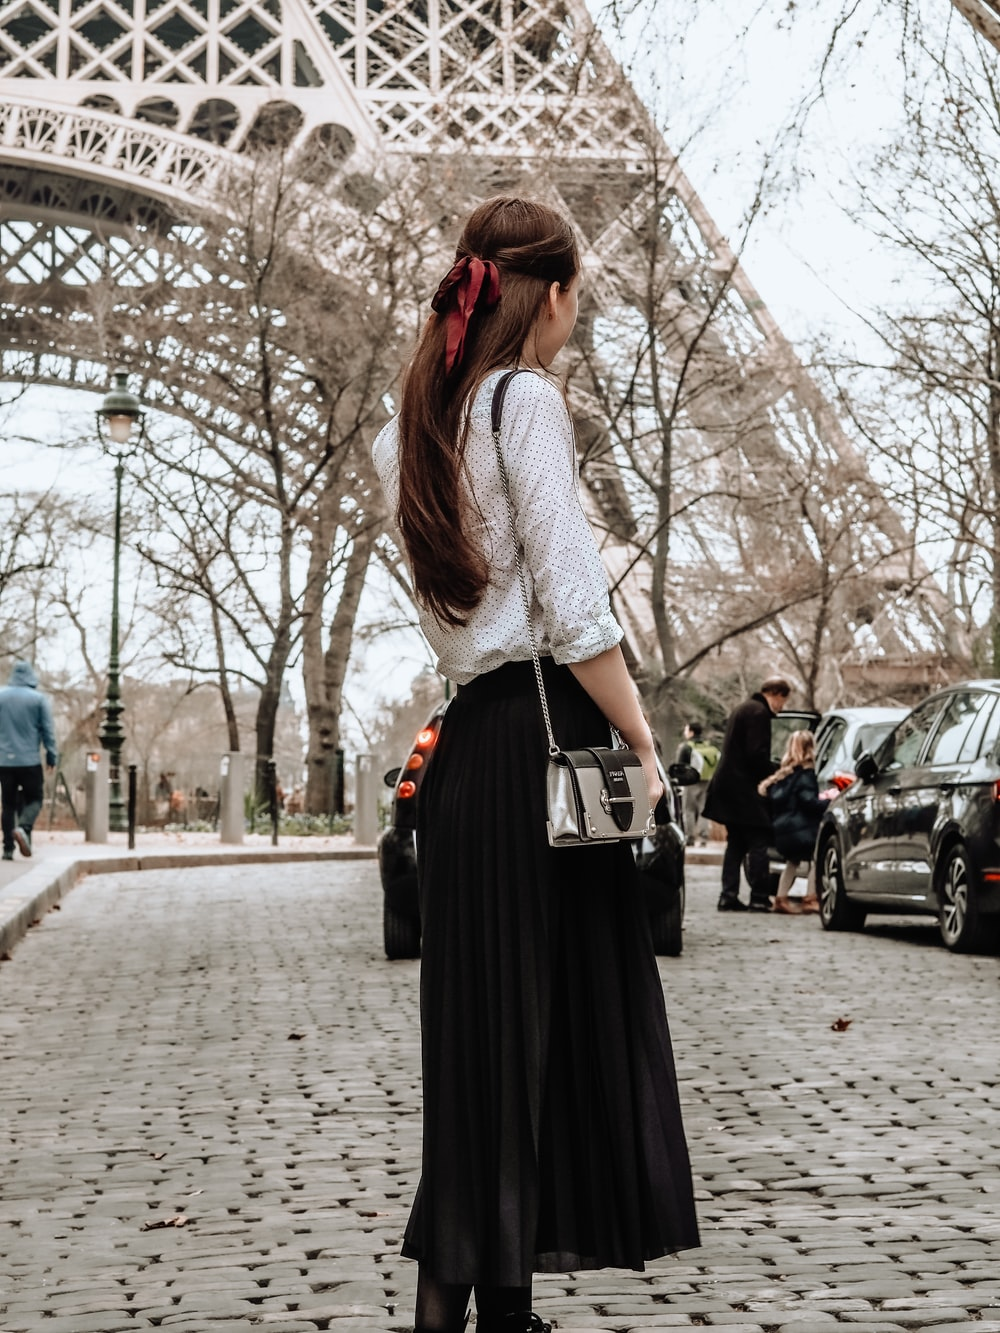 woman in white and black dress standing on sidewalk during daytime